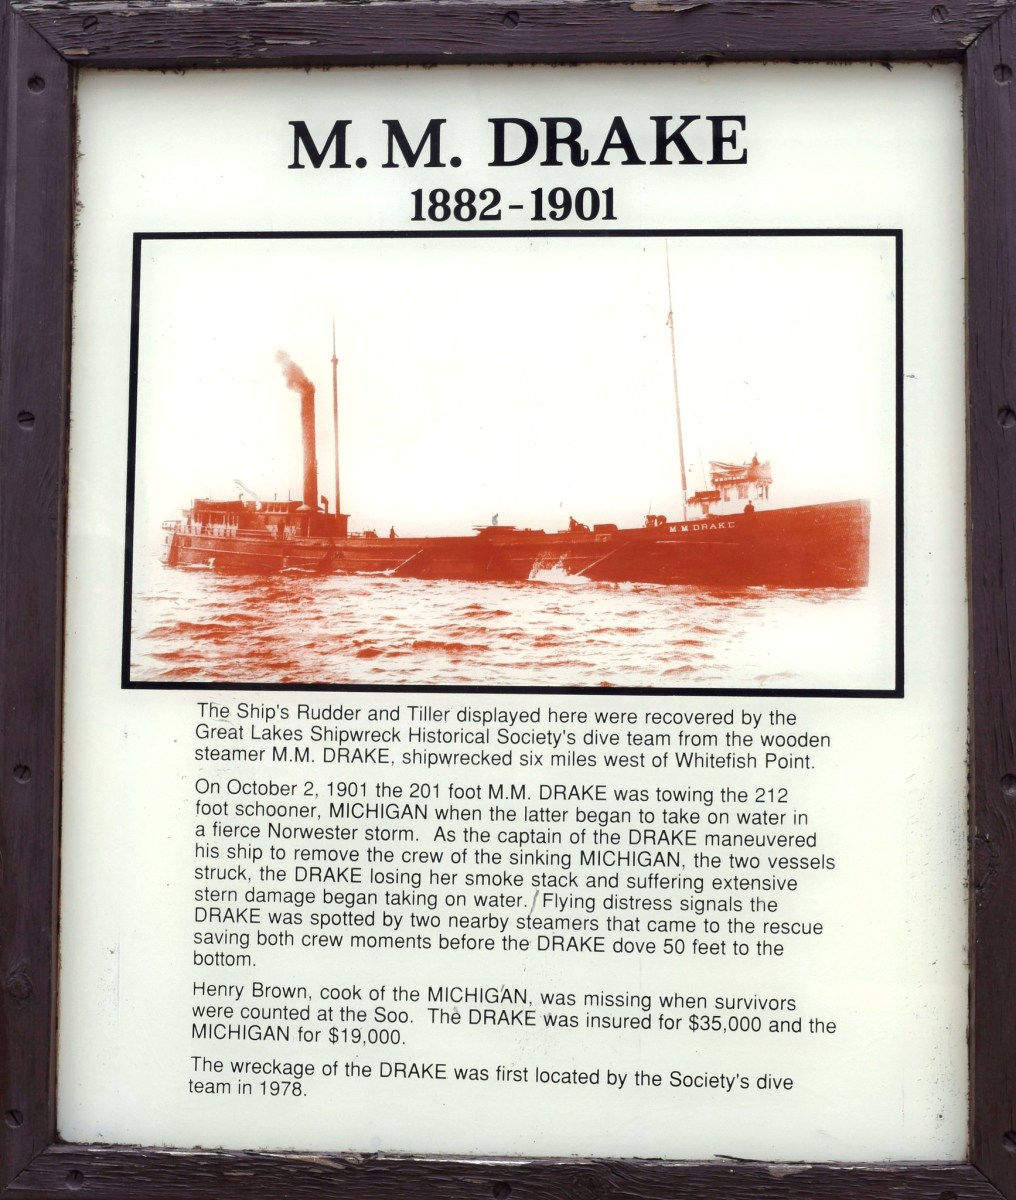 M. M. Drake display at the Great Lakes Shipwreck Museum in Whitefish Point, Michigan.